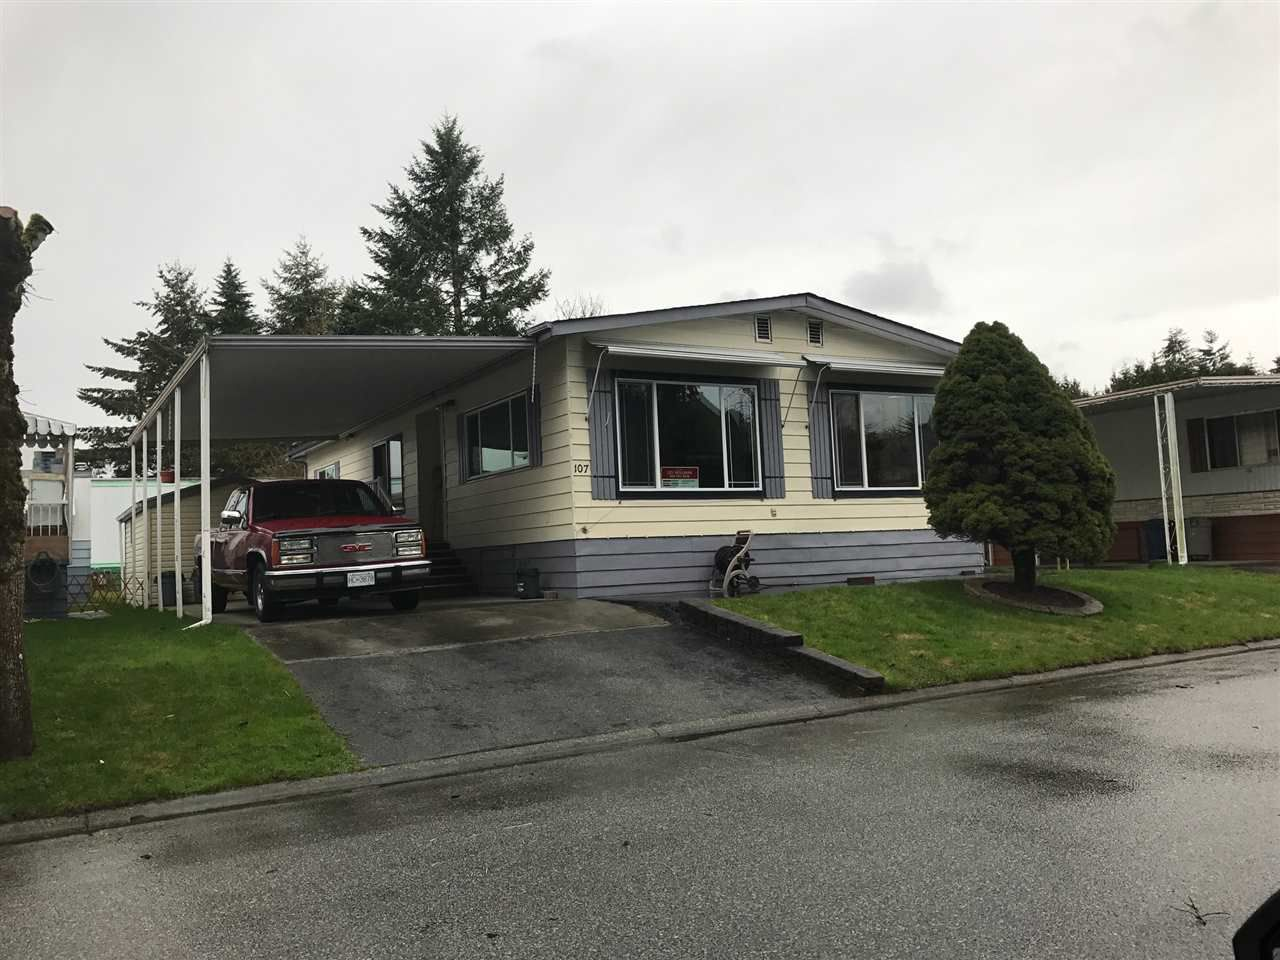 "Main Photo: 107 8560 156 in Surrey: Fleetwood Tynehead Manufactured Home for sale in ""Westvilla"" : MLS®# R2148670"